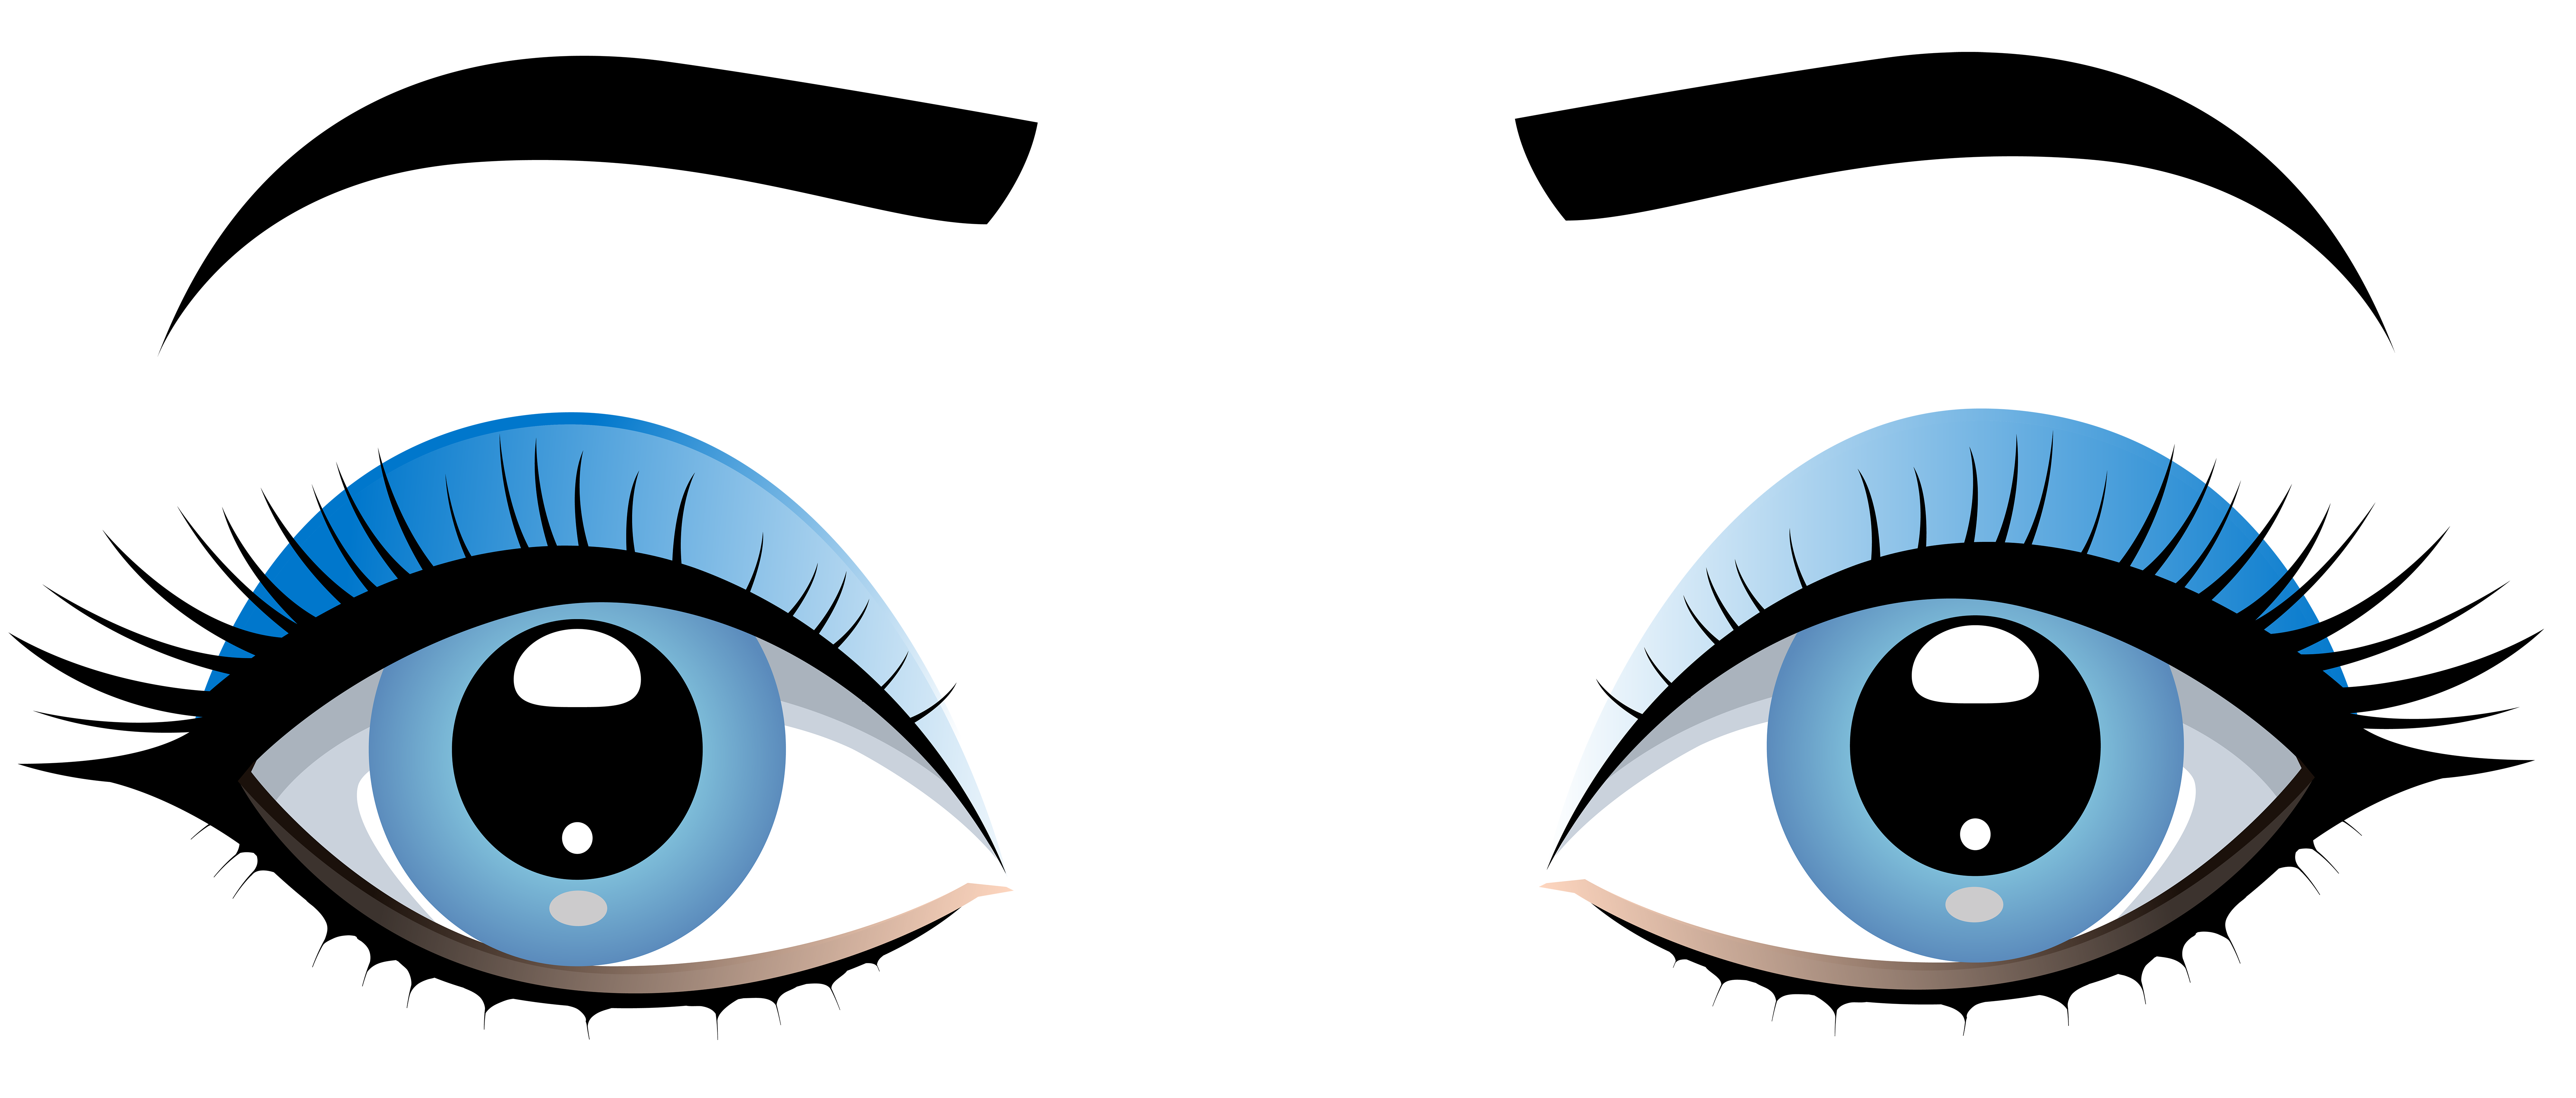 8000x3410 Eyelid Drawing Cartoon Frames Illustrations Hd Images